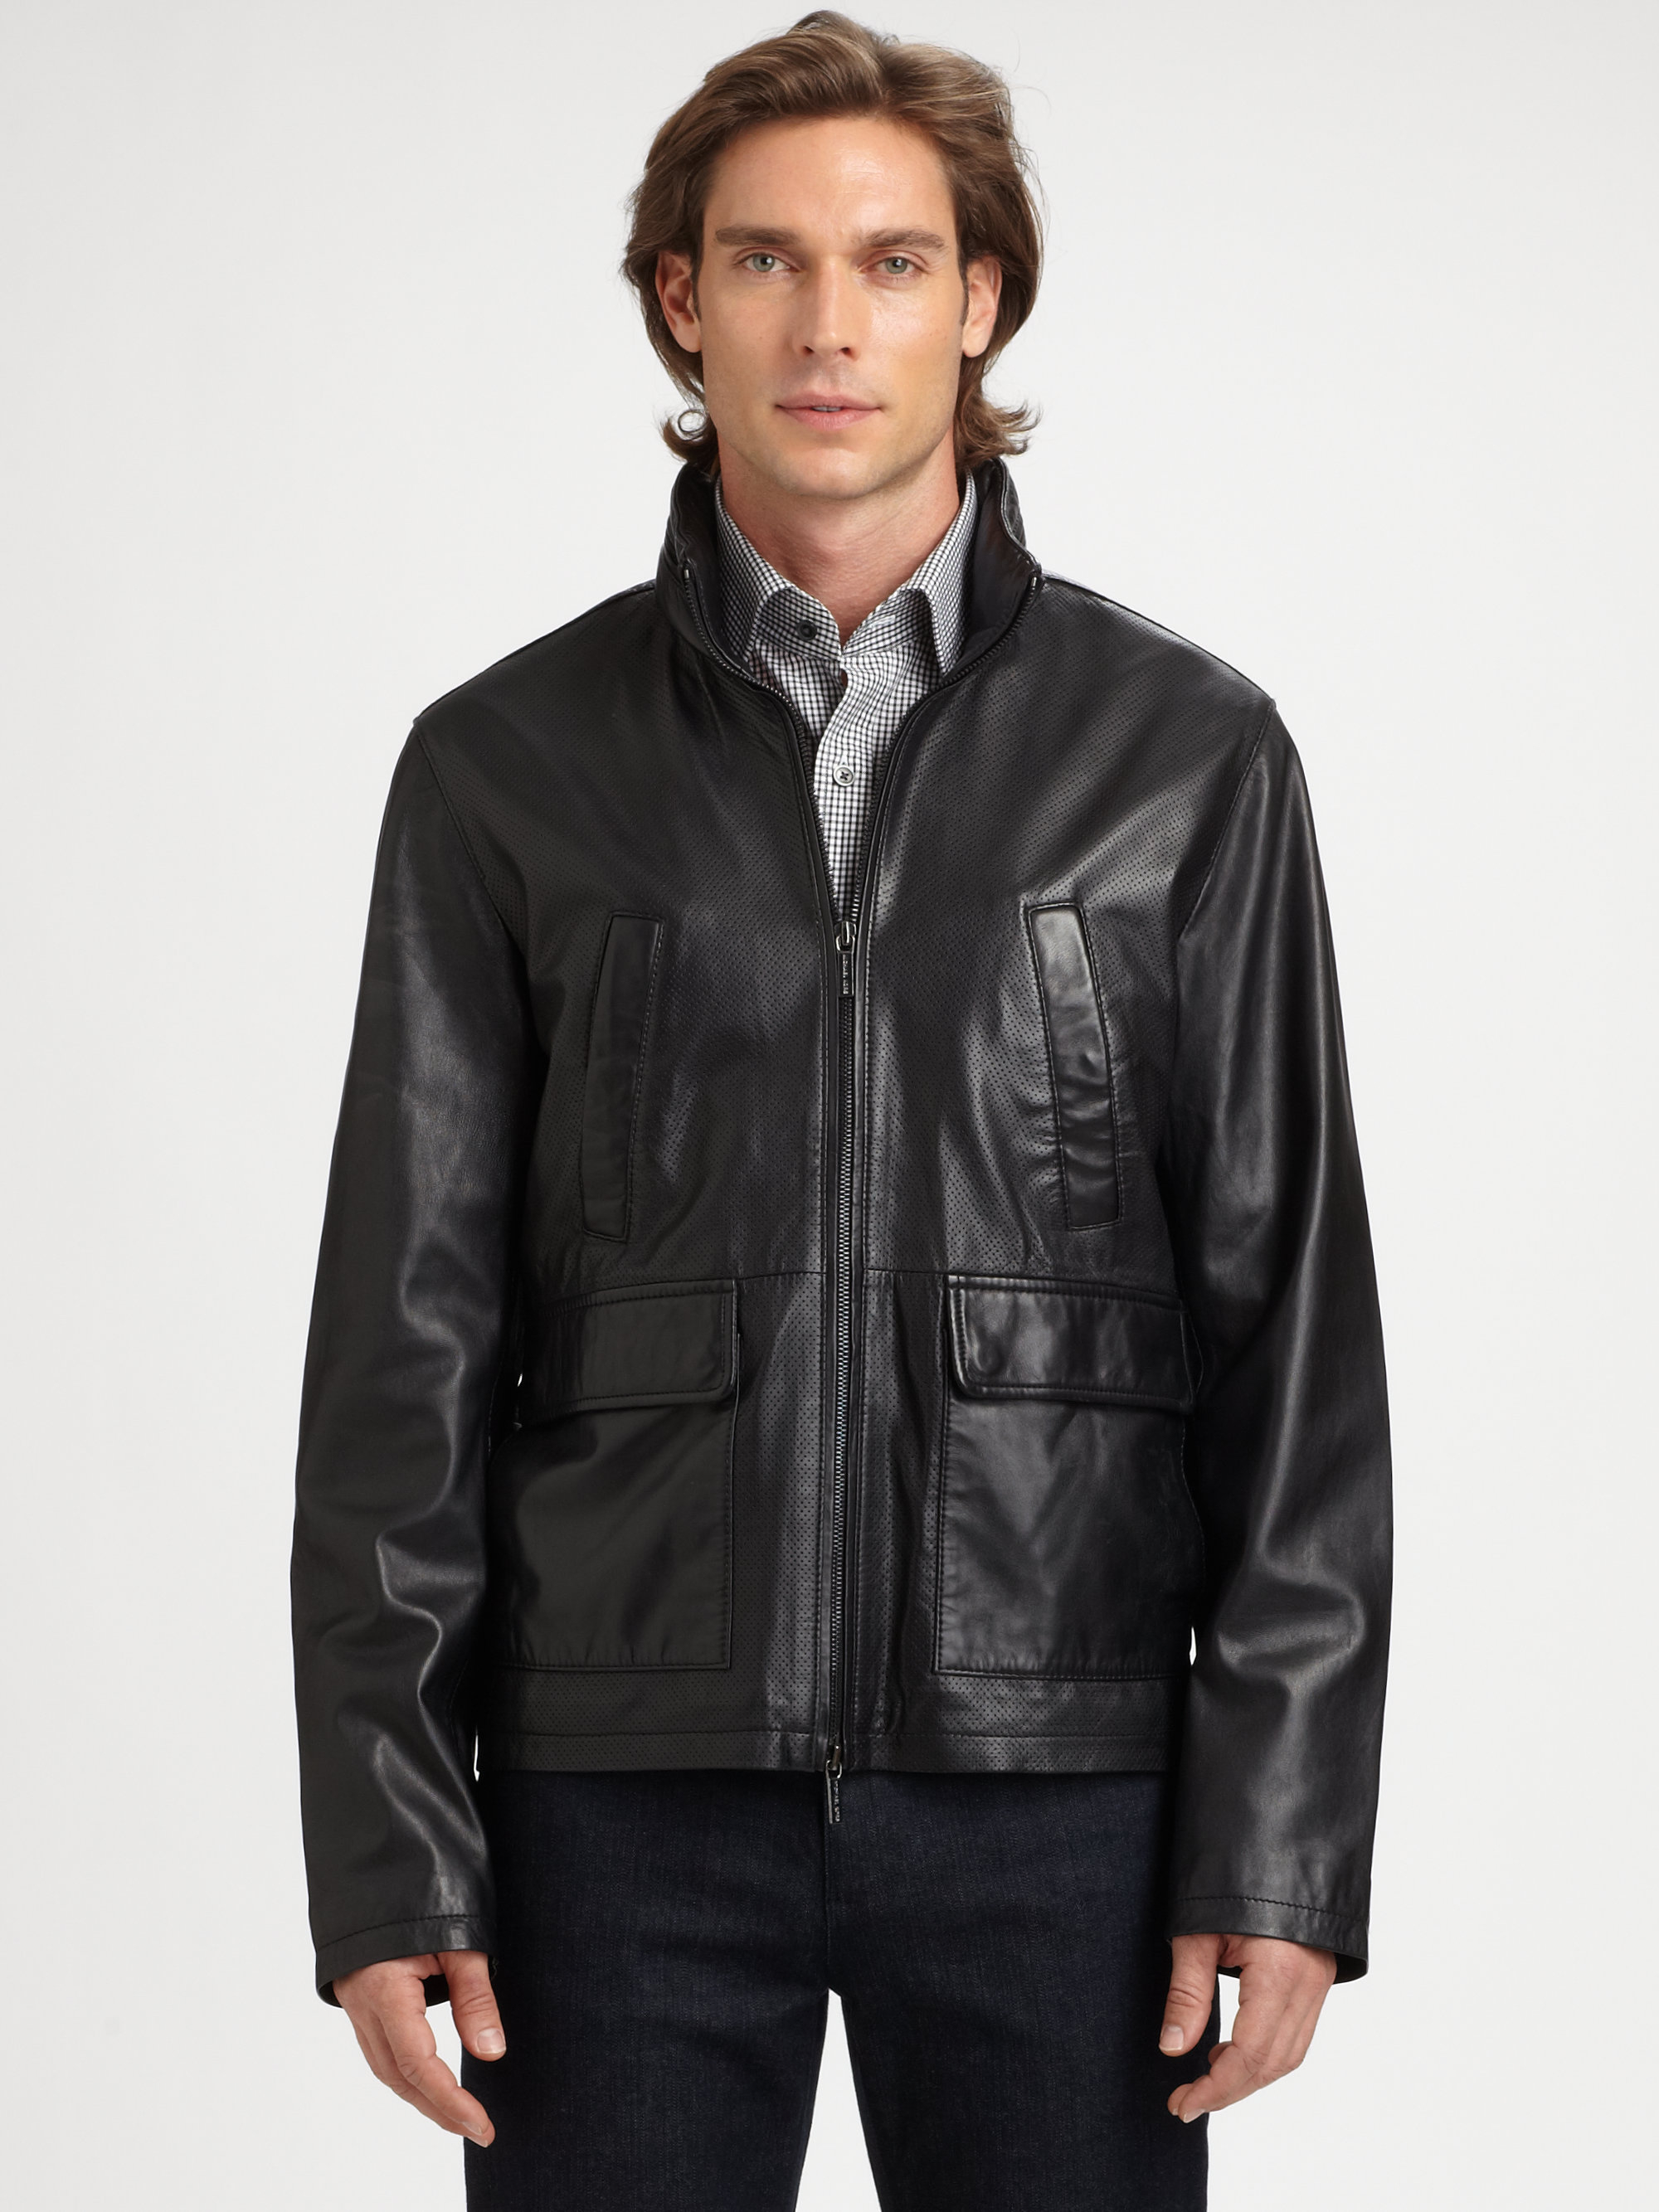 Michael kors Perforated Leather Jacket in Black for Men | Lyst